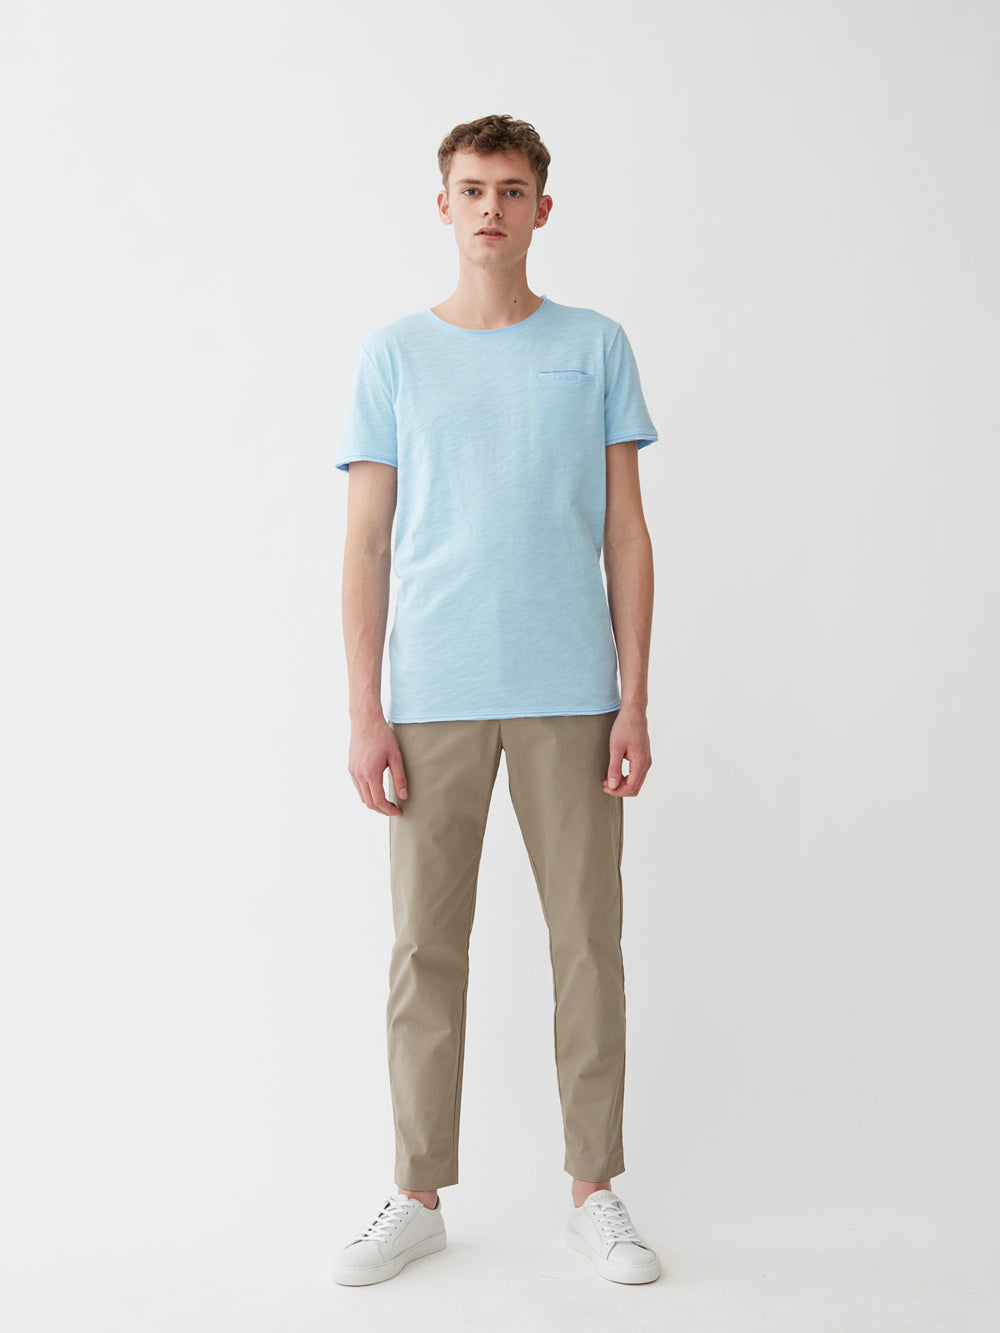 Mateo T-Shirt | Light Blue